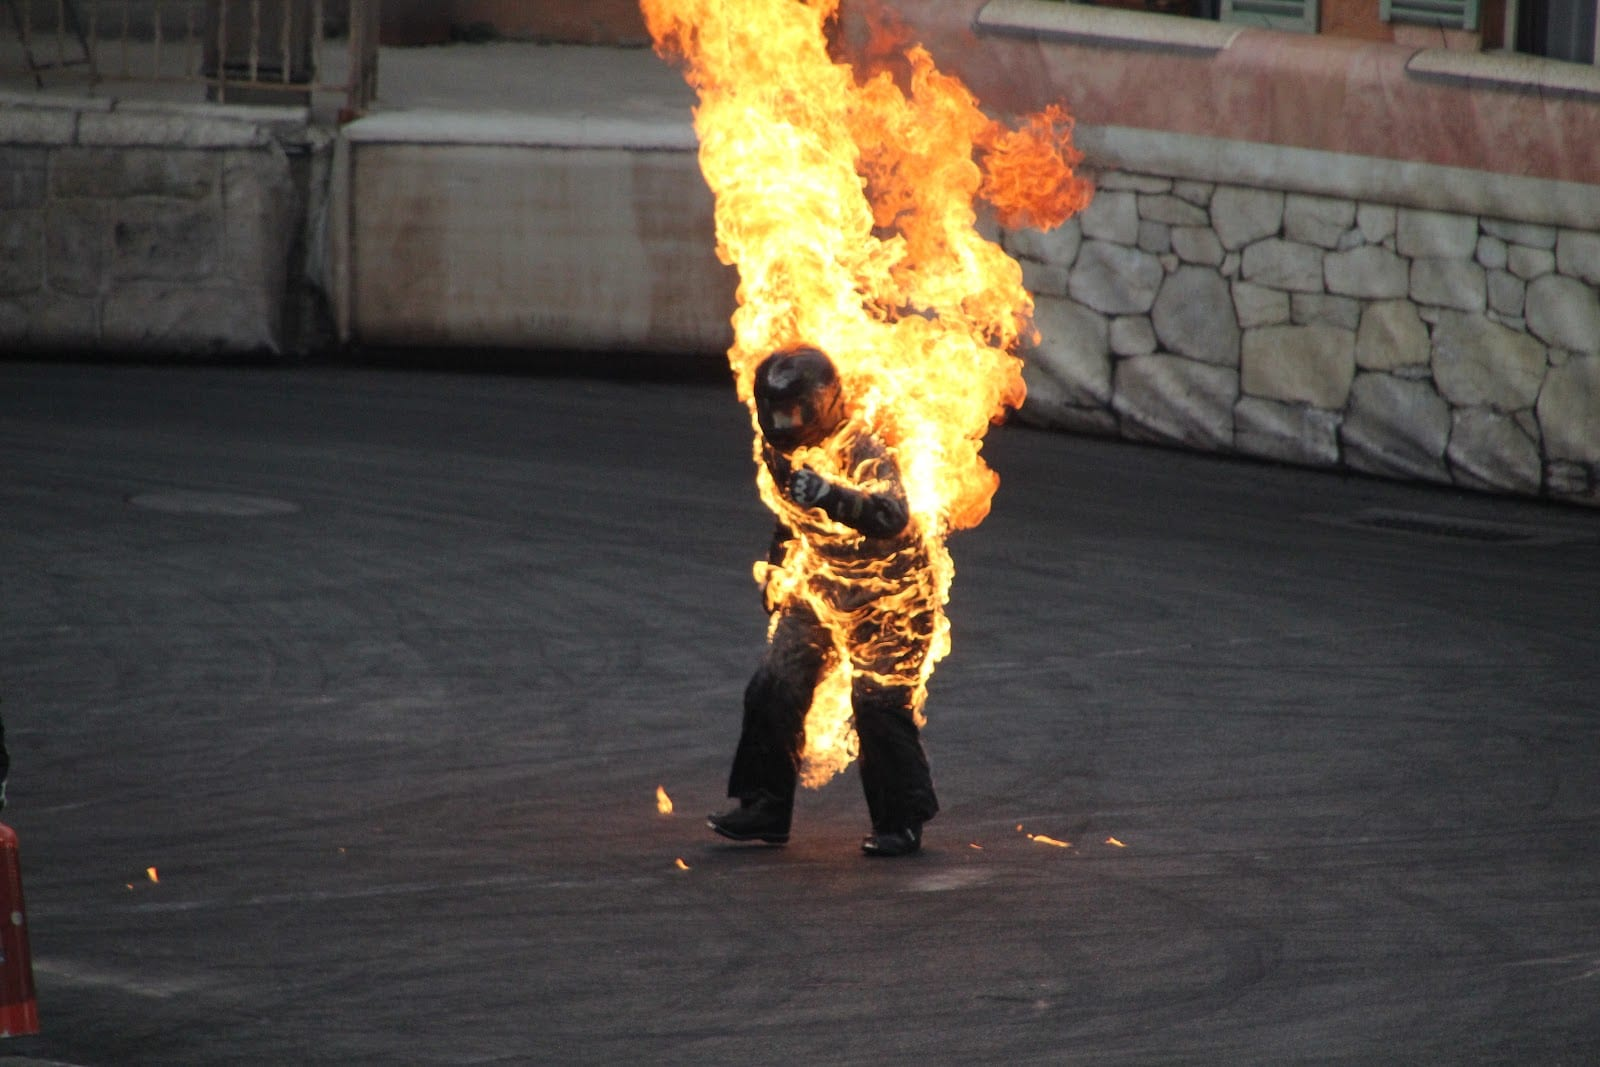 List of 10 Most Dangerous Jobs - 9. Stuntman